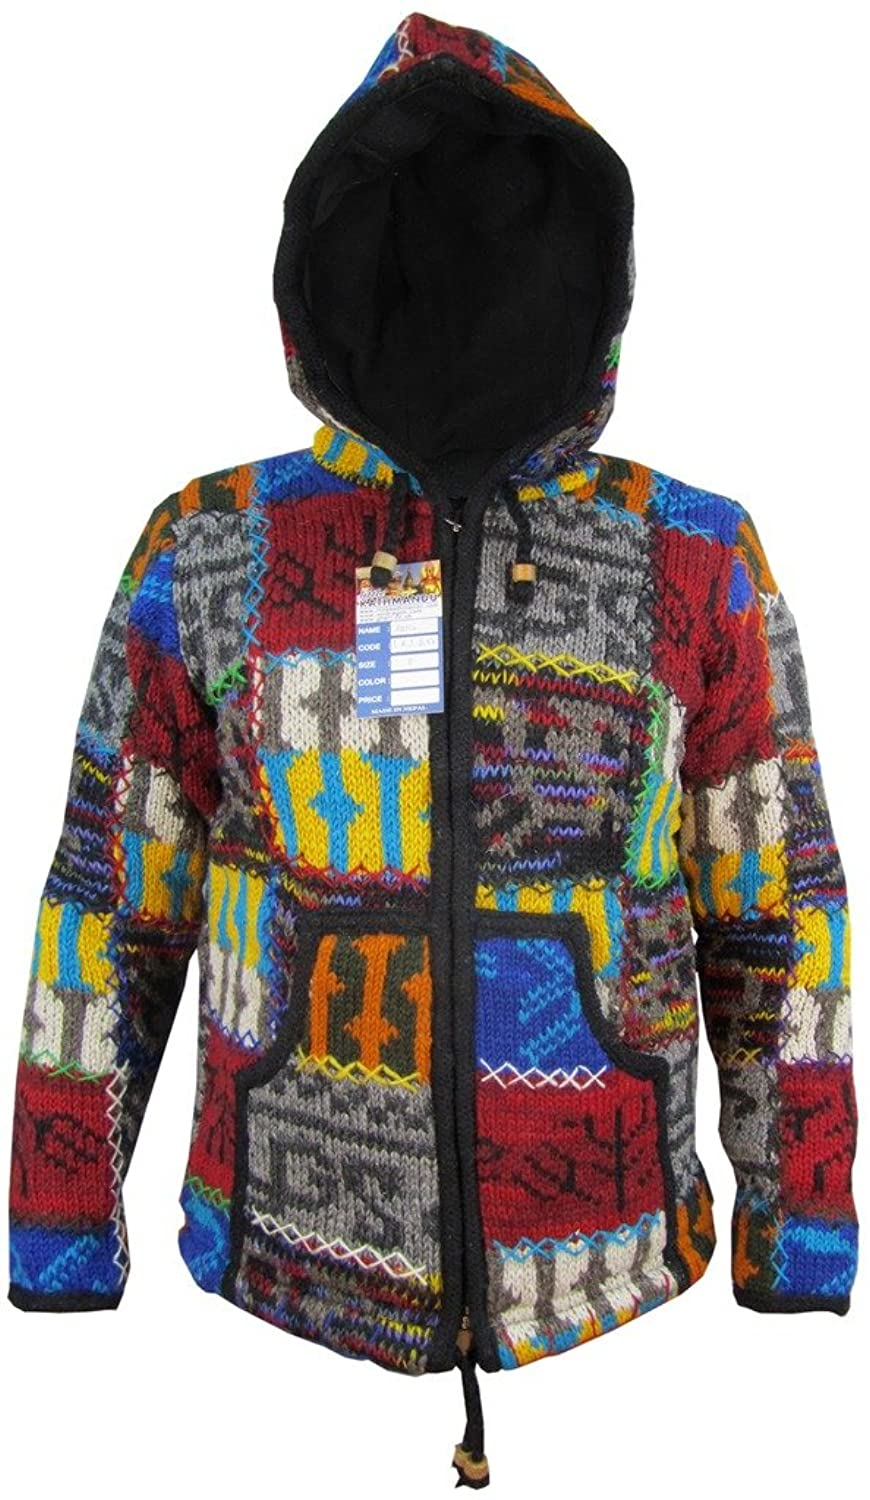 Men's Double Knitted Natural Woolen Patchwork Camping Festival Adventure Stitch Warm Jacket Jumper Hoodie